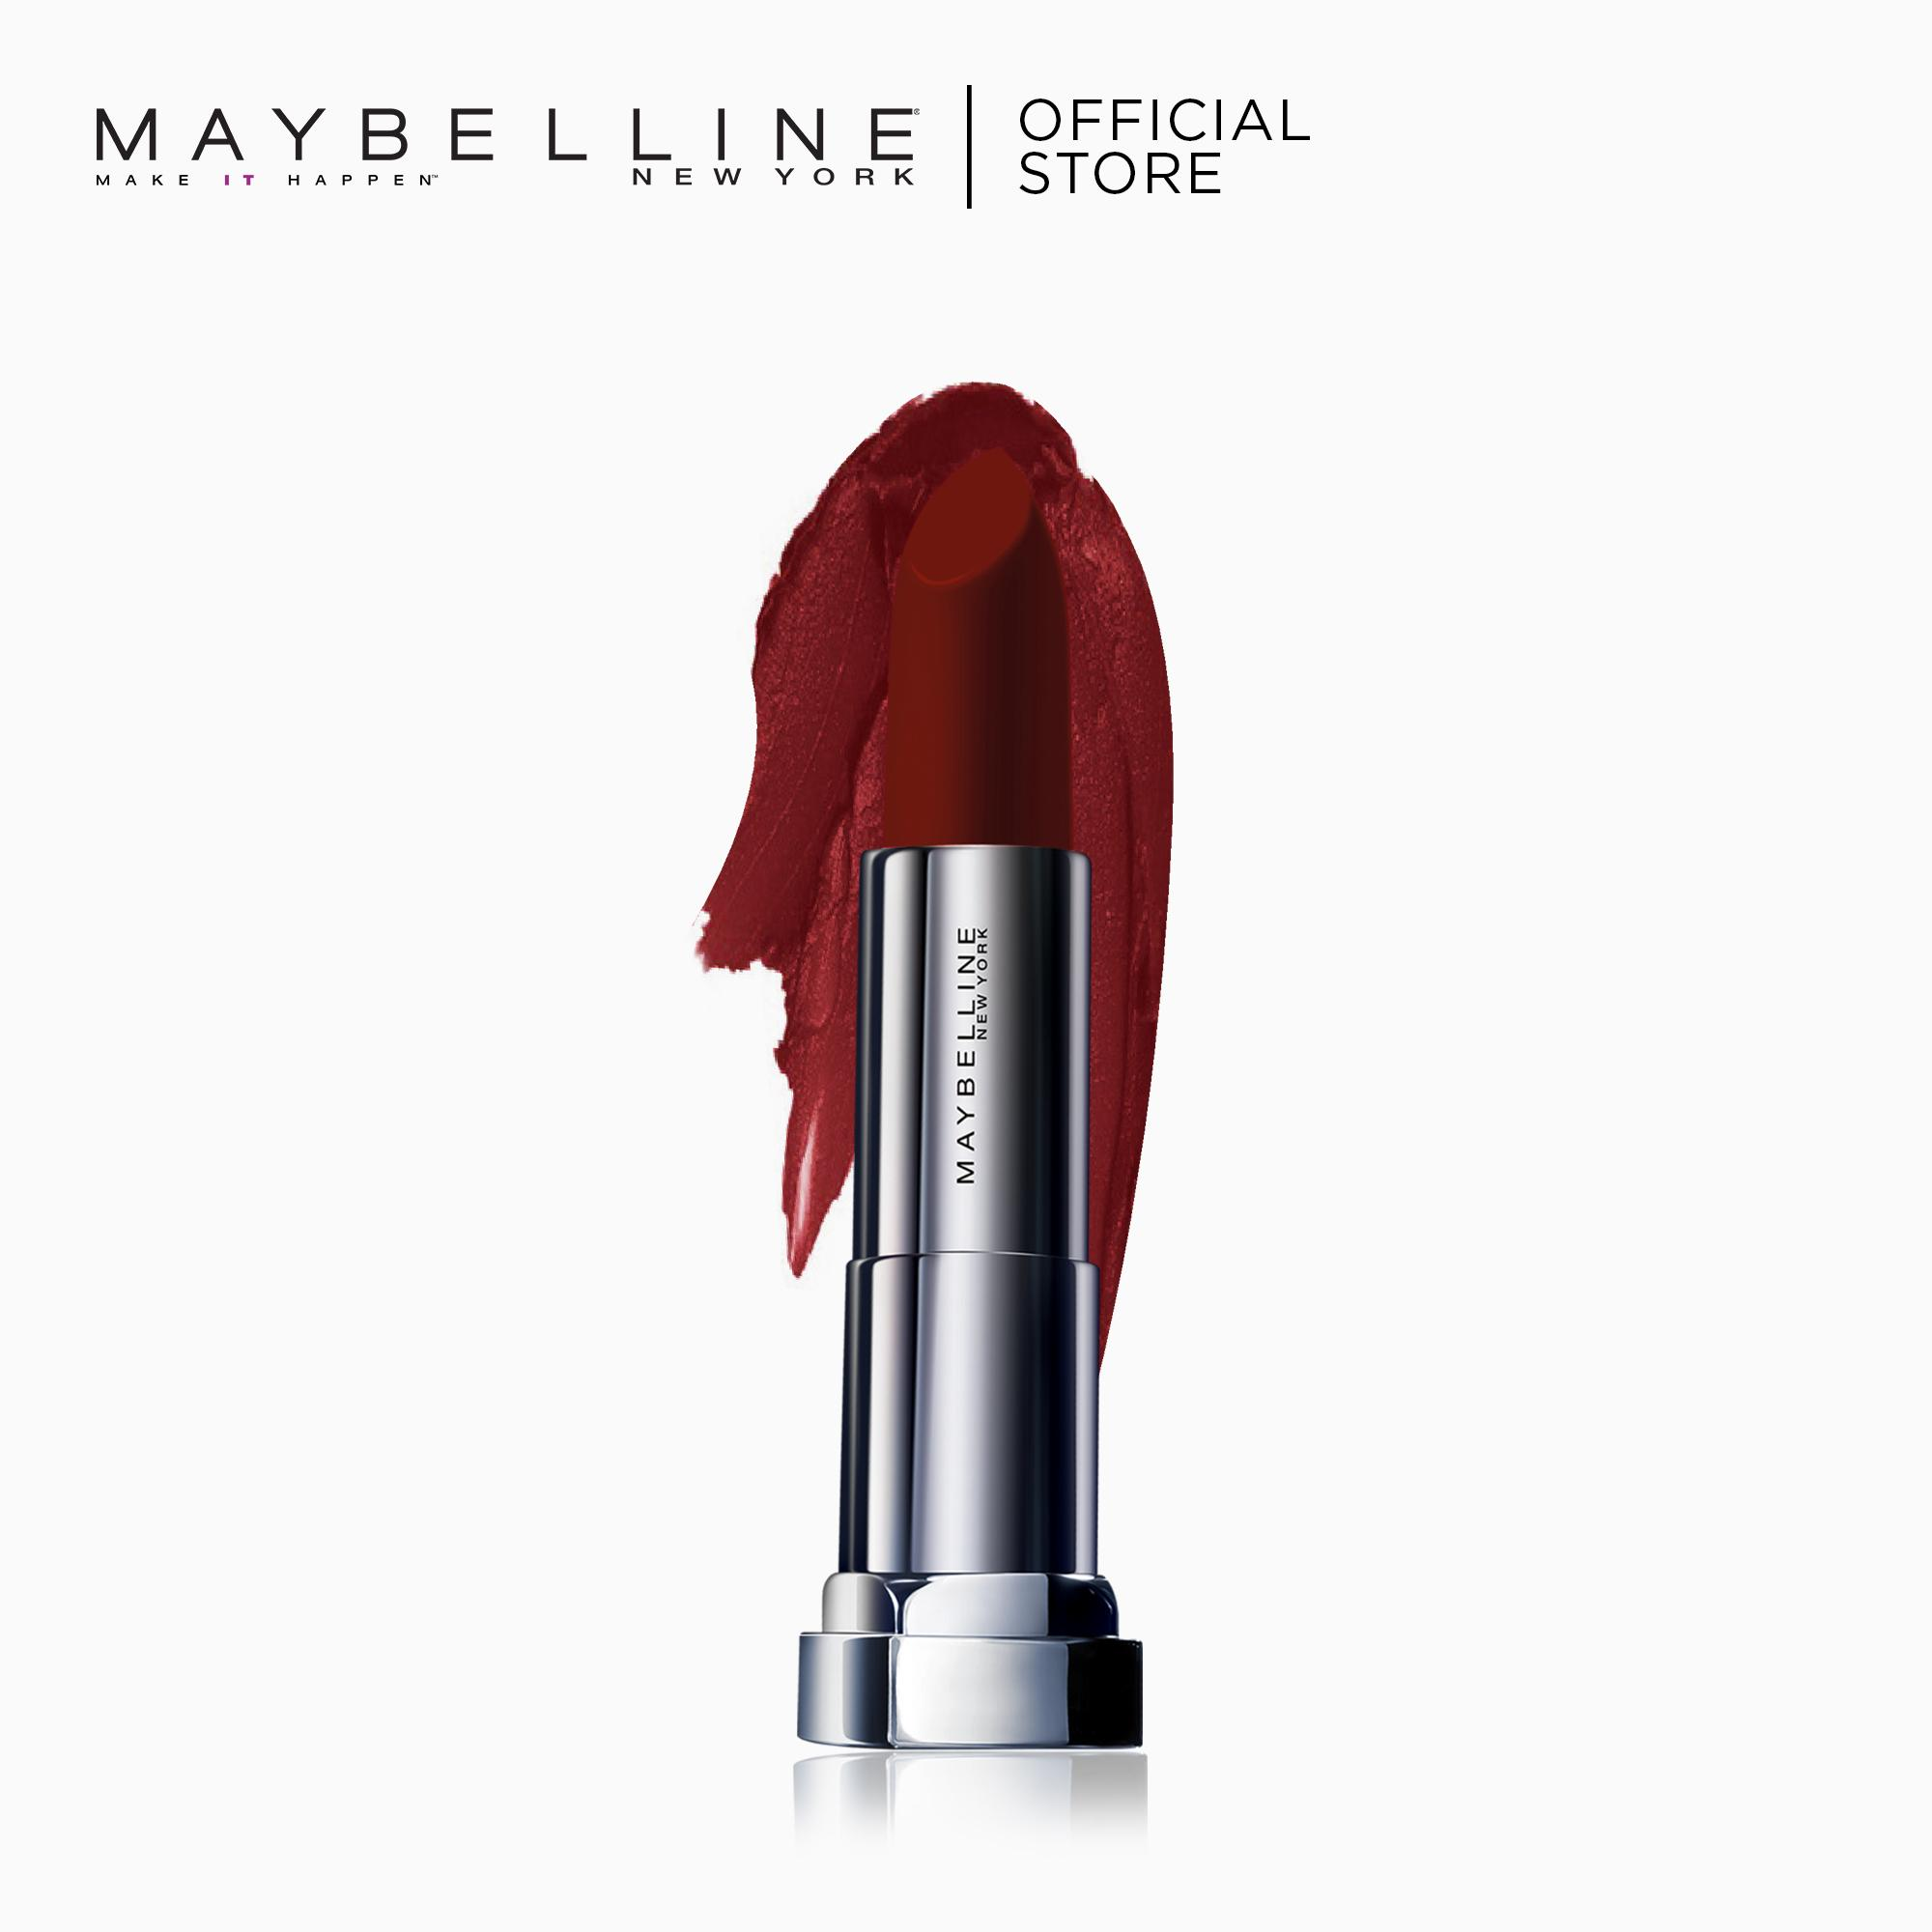 Creamy Matte Lipstick - Code Red [New Yorks #1] by Maybelline Color Sensational Philippines